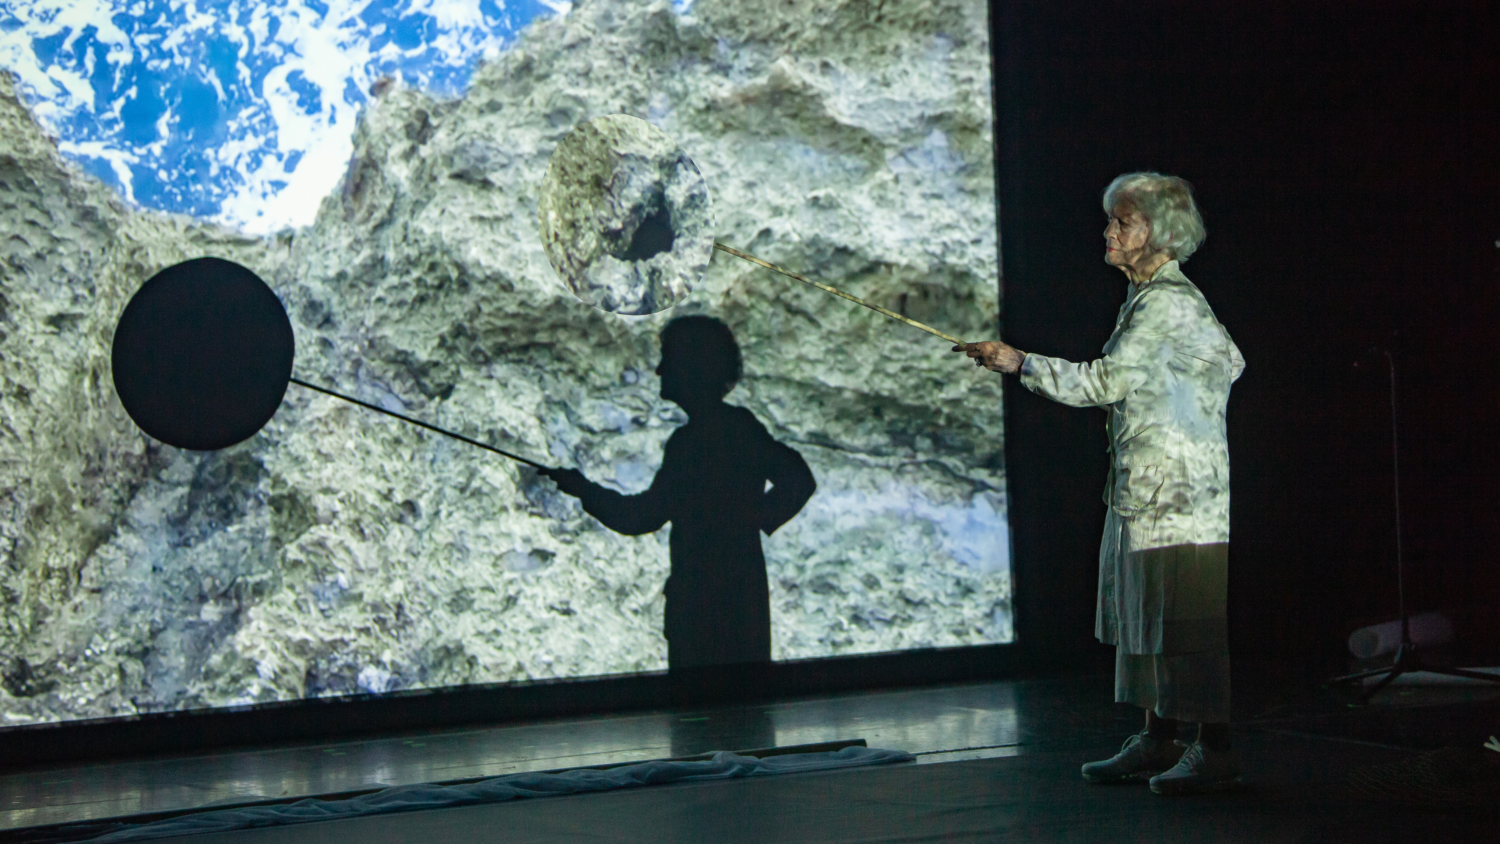 Joan Jonas, Moving Off the Land, 2016/2018, Cowell Theater, Fort Mason Center for Arts & Culture, San Francisco, 2019.